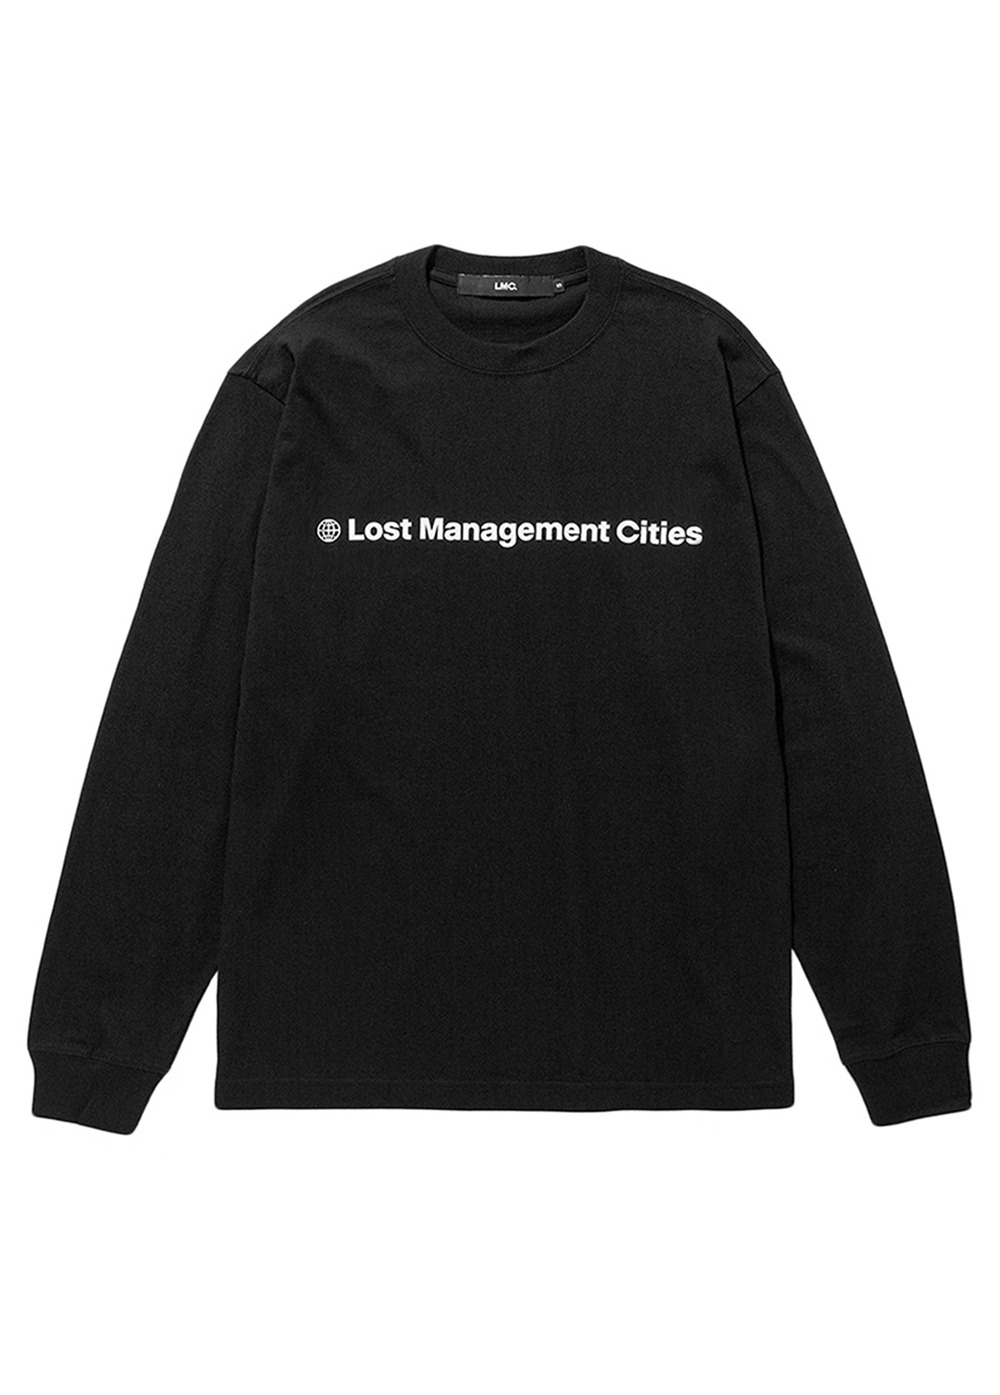 LMC FN OG LONG SLV TEE black